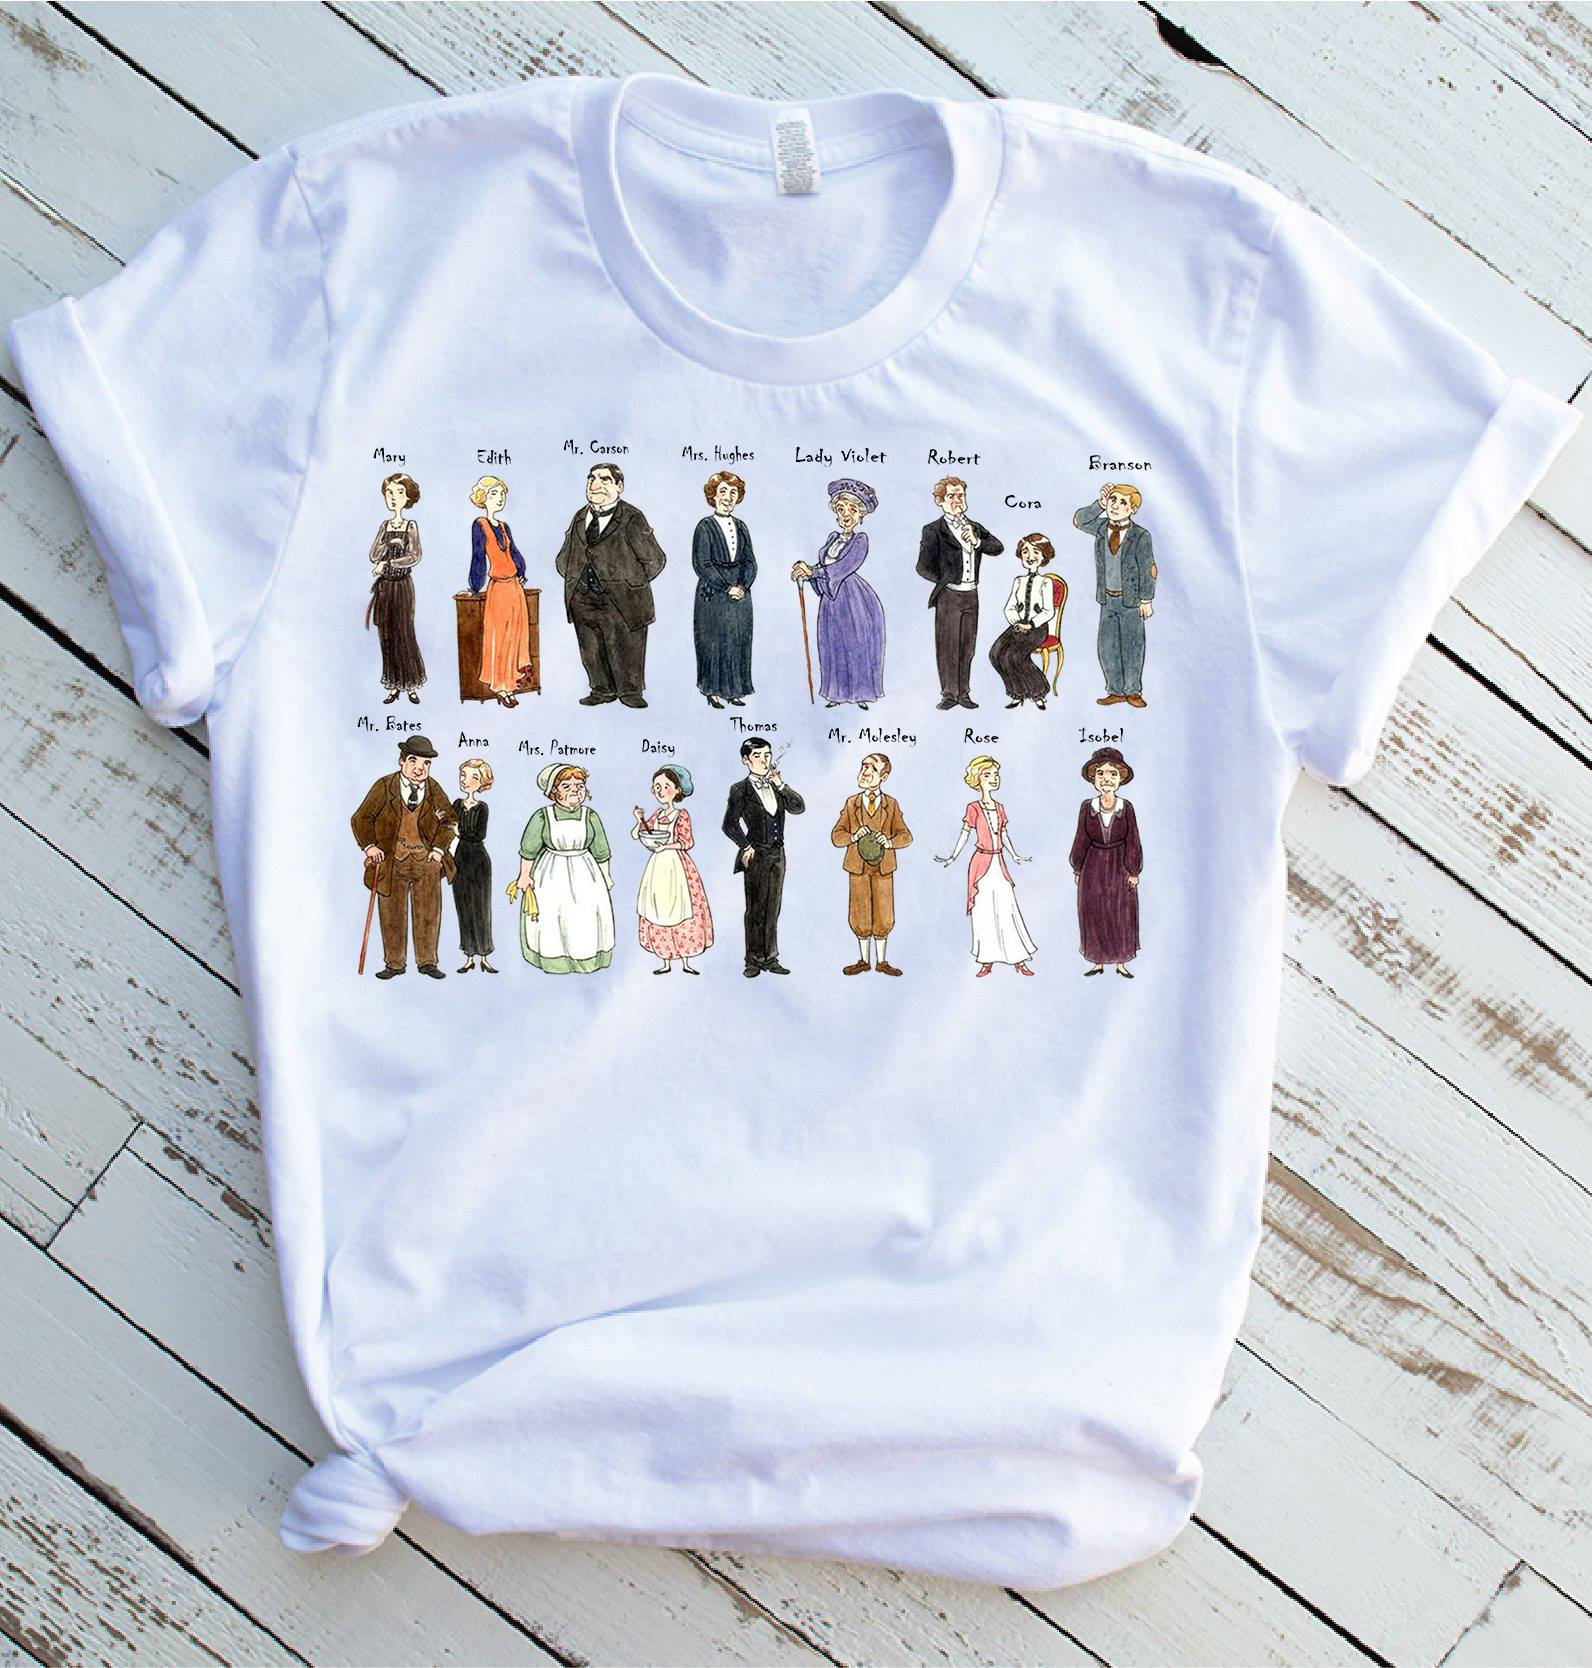 All Downton Abbey Characters Shirt